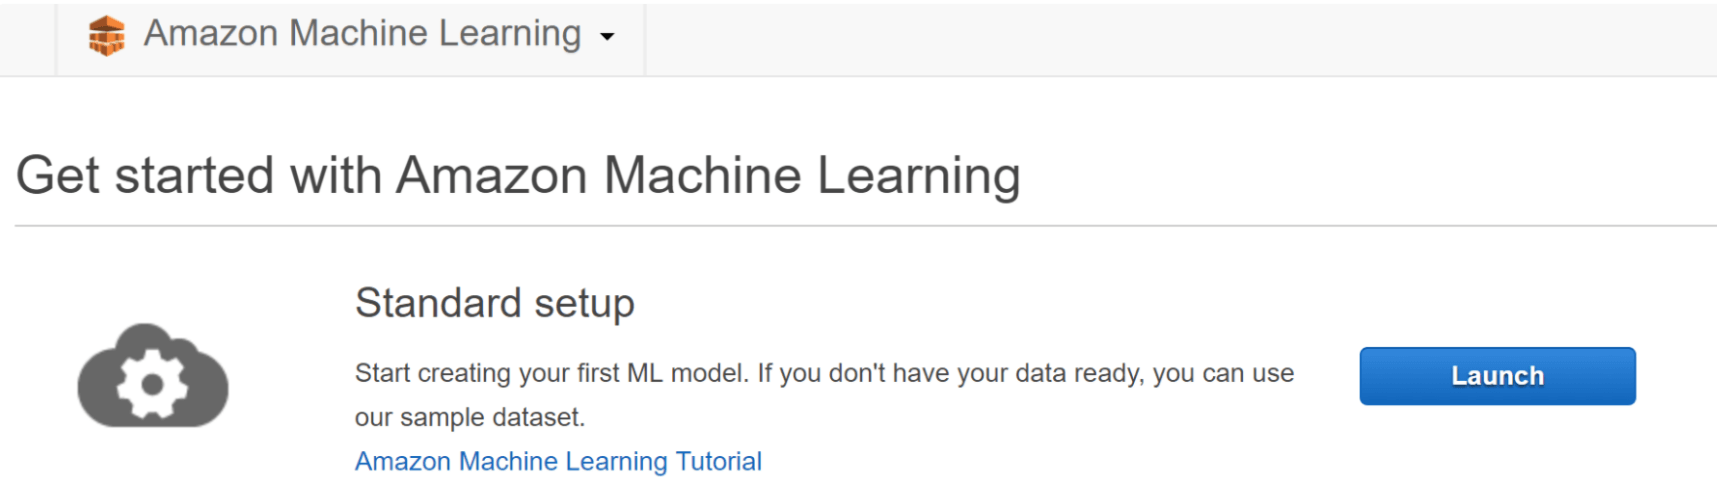 Getting Started with Amazon Machine Learning